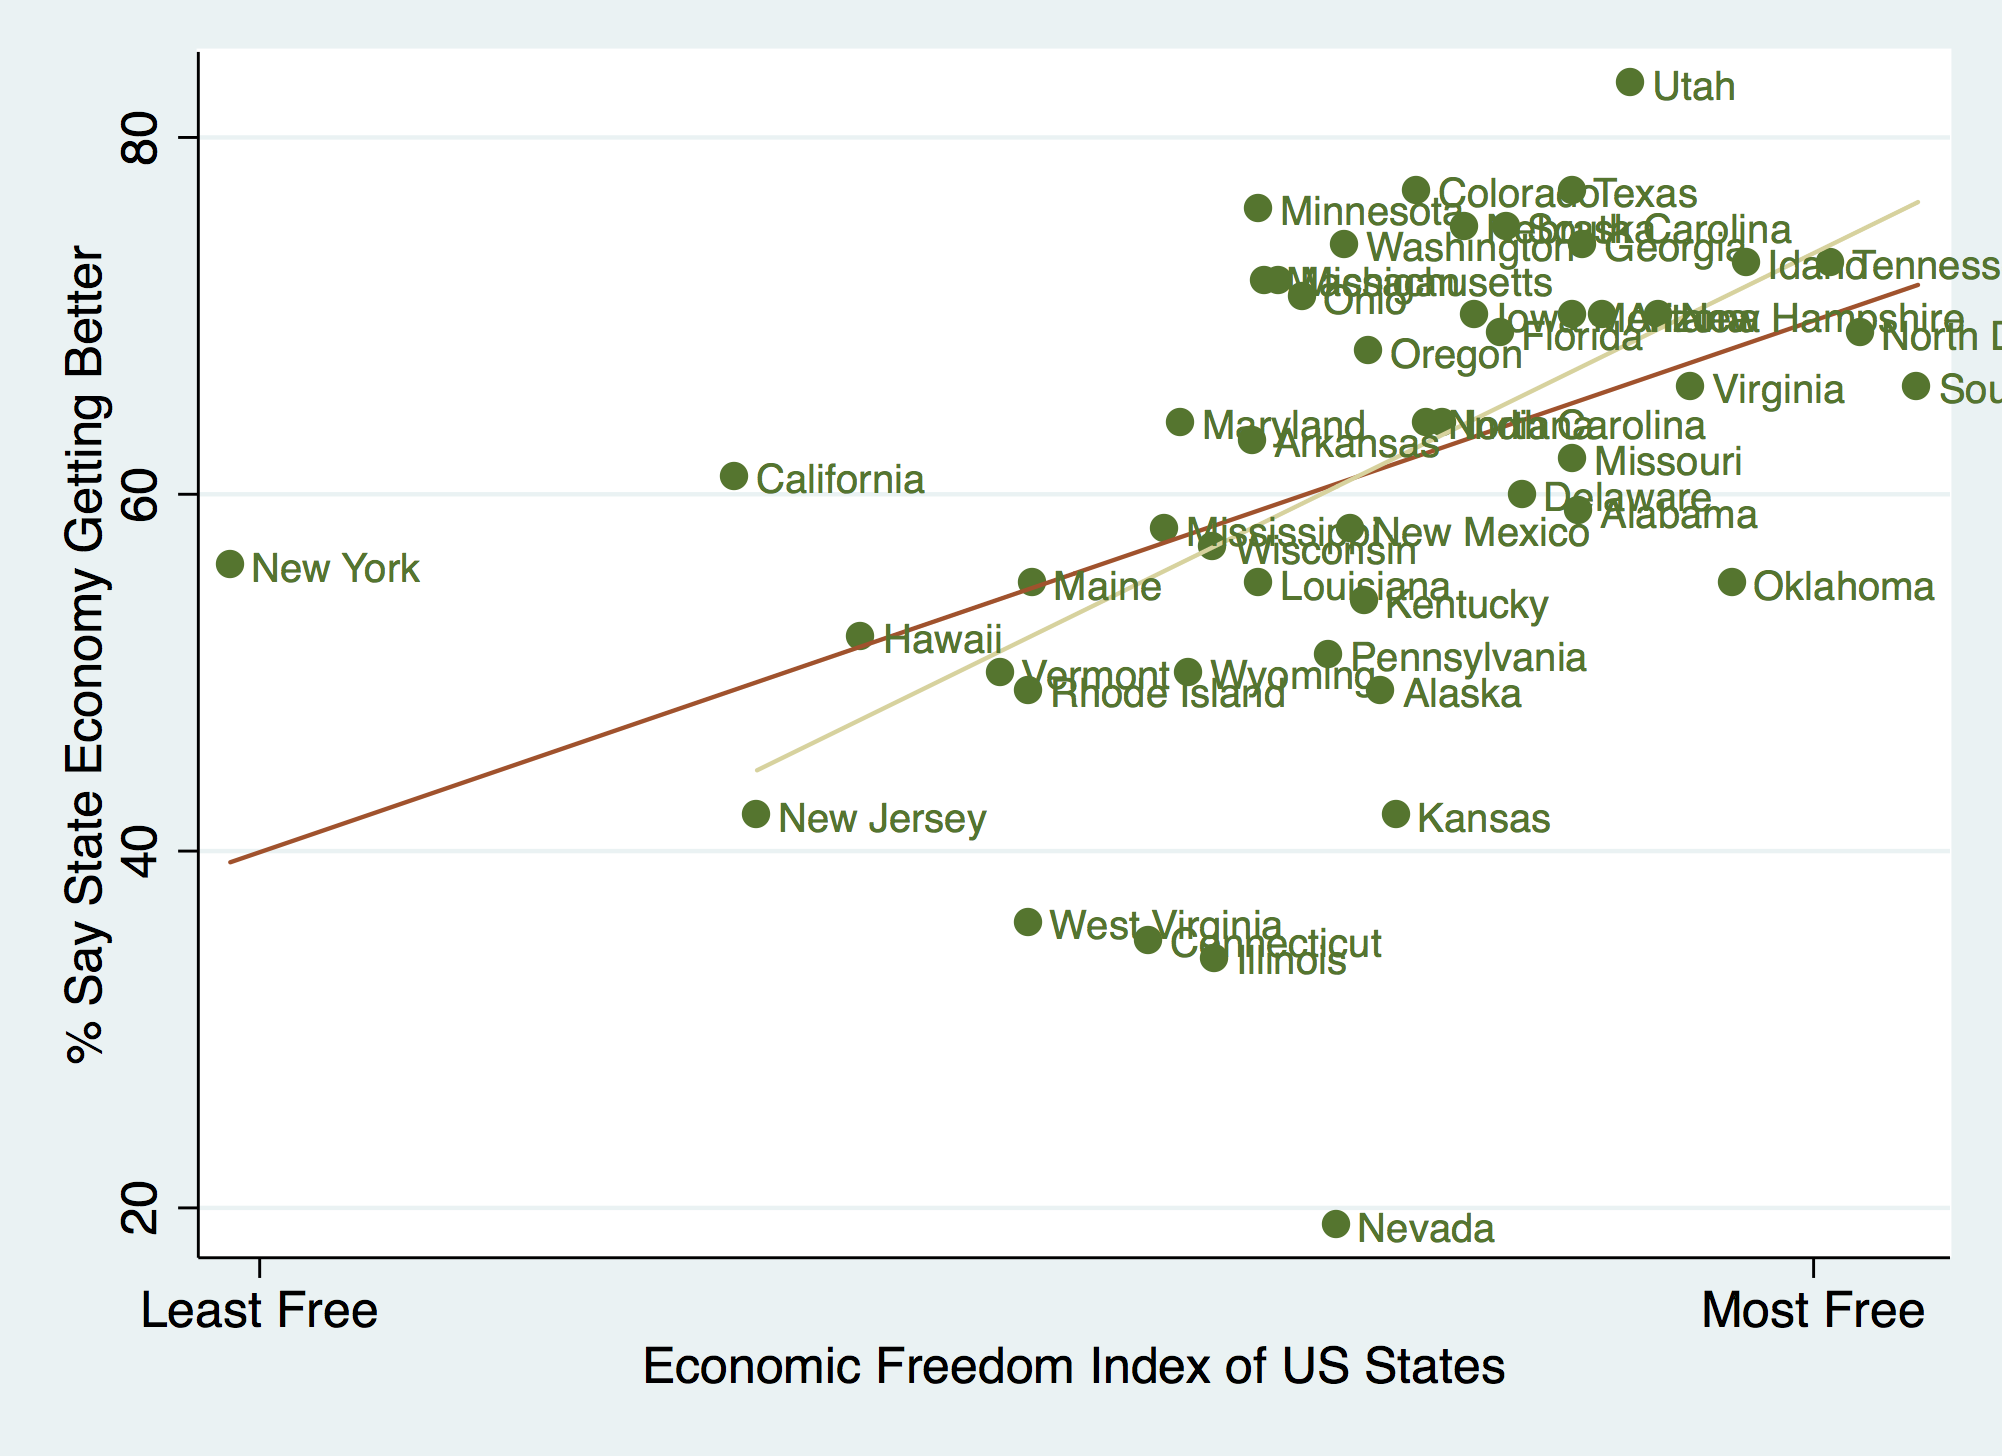 Source: Economic Freedom Index 2011, Freedom in the 50 States; Gallup 50-State Poll 2015. Correlation: .44, if outliers like New York, California, and Nevada are excluded, correlation rises to .58.